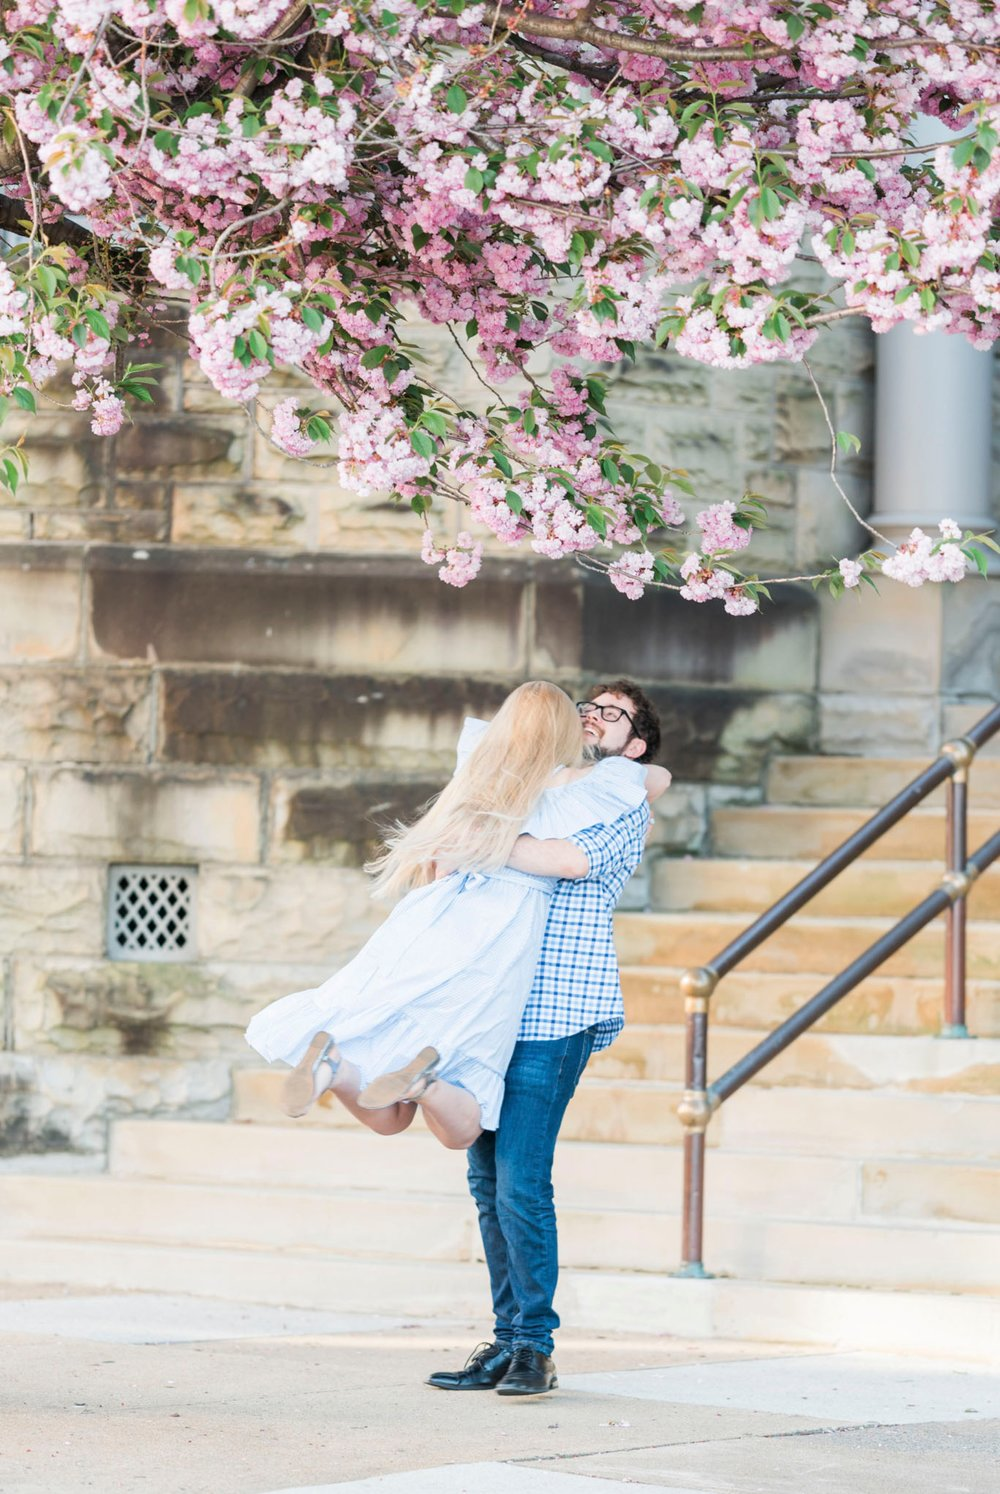 LaunceTarah_VirginiaWeddingPhotographer_EngagementSession_LynchburgVA_DowntownLynchburg_SpringEngagement 4.jpg